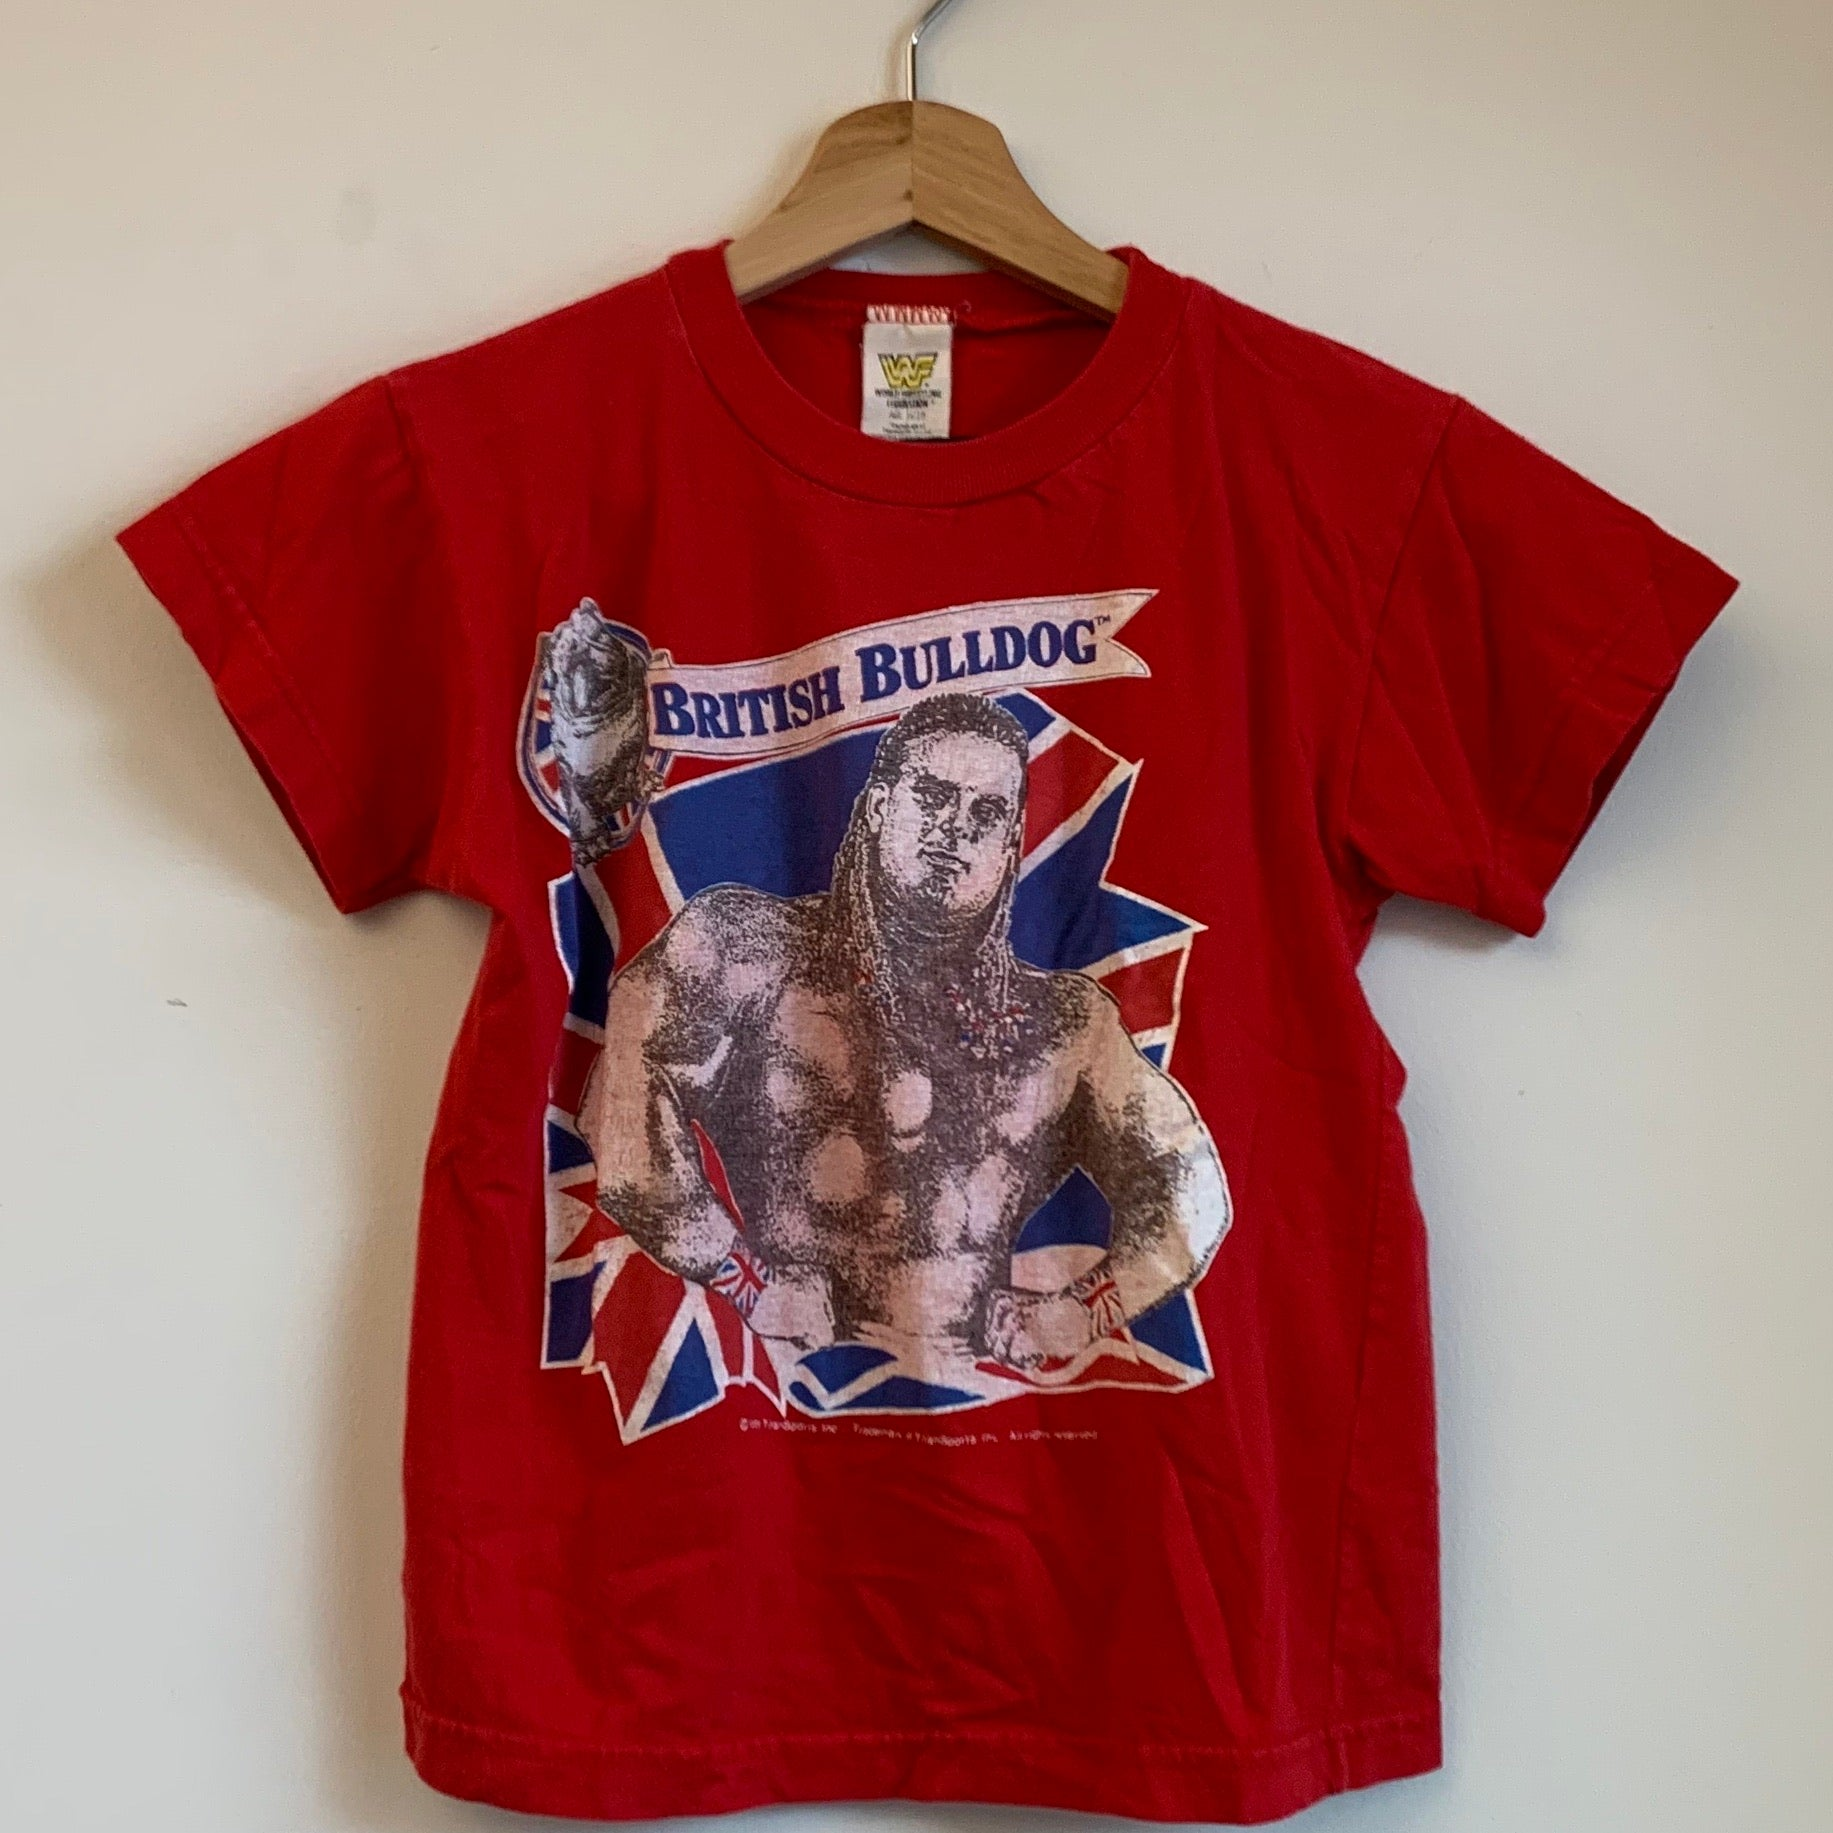 Youth WF British Bulldog Red/White/Blue Wrestling Tee